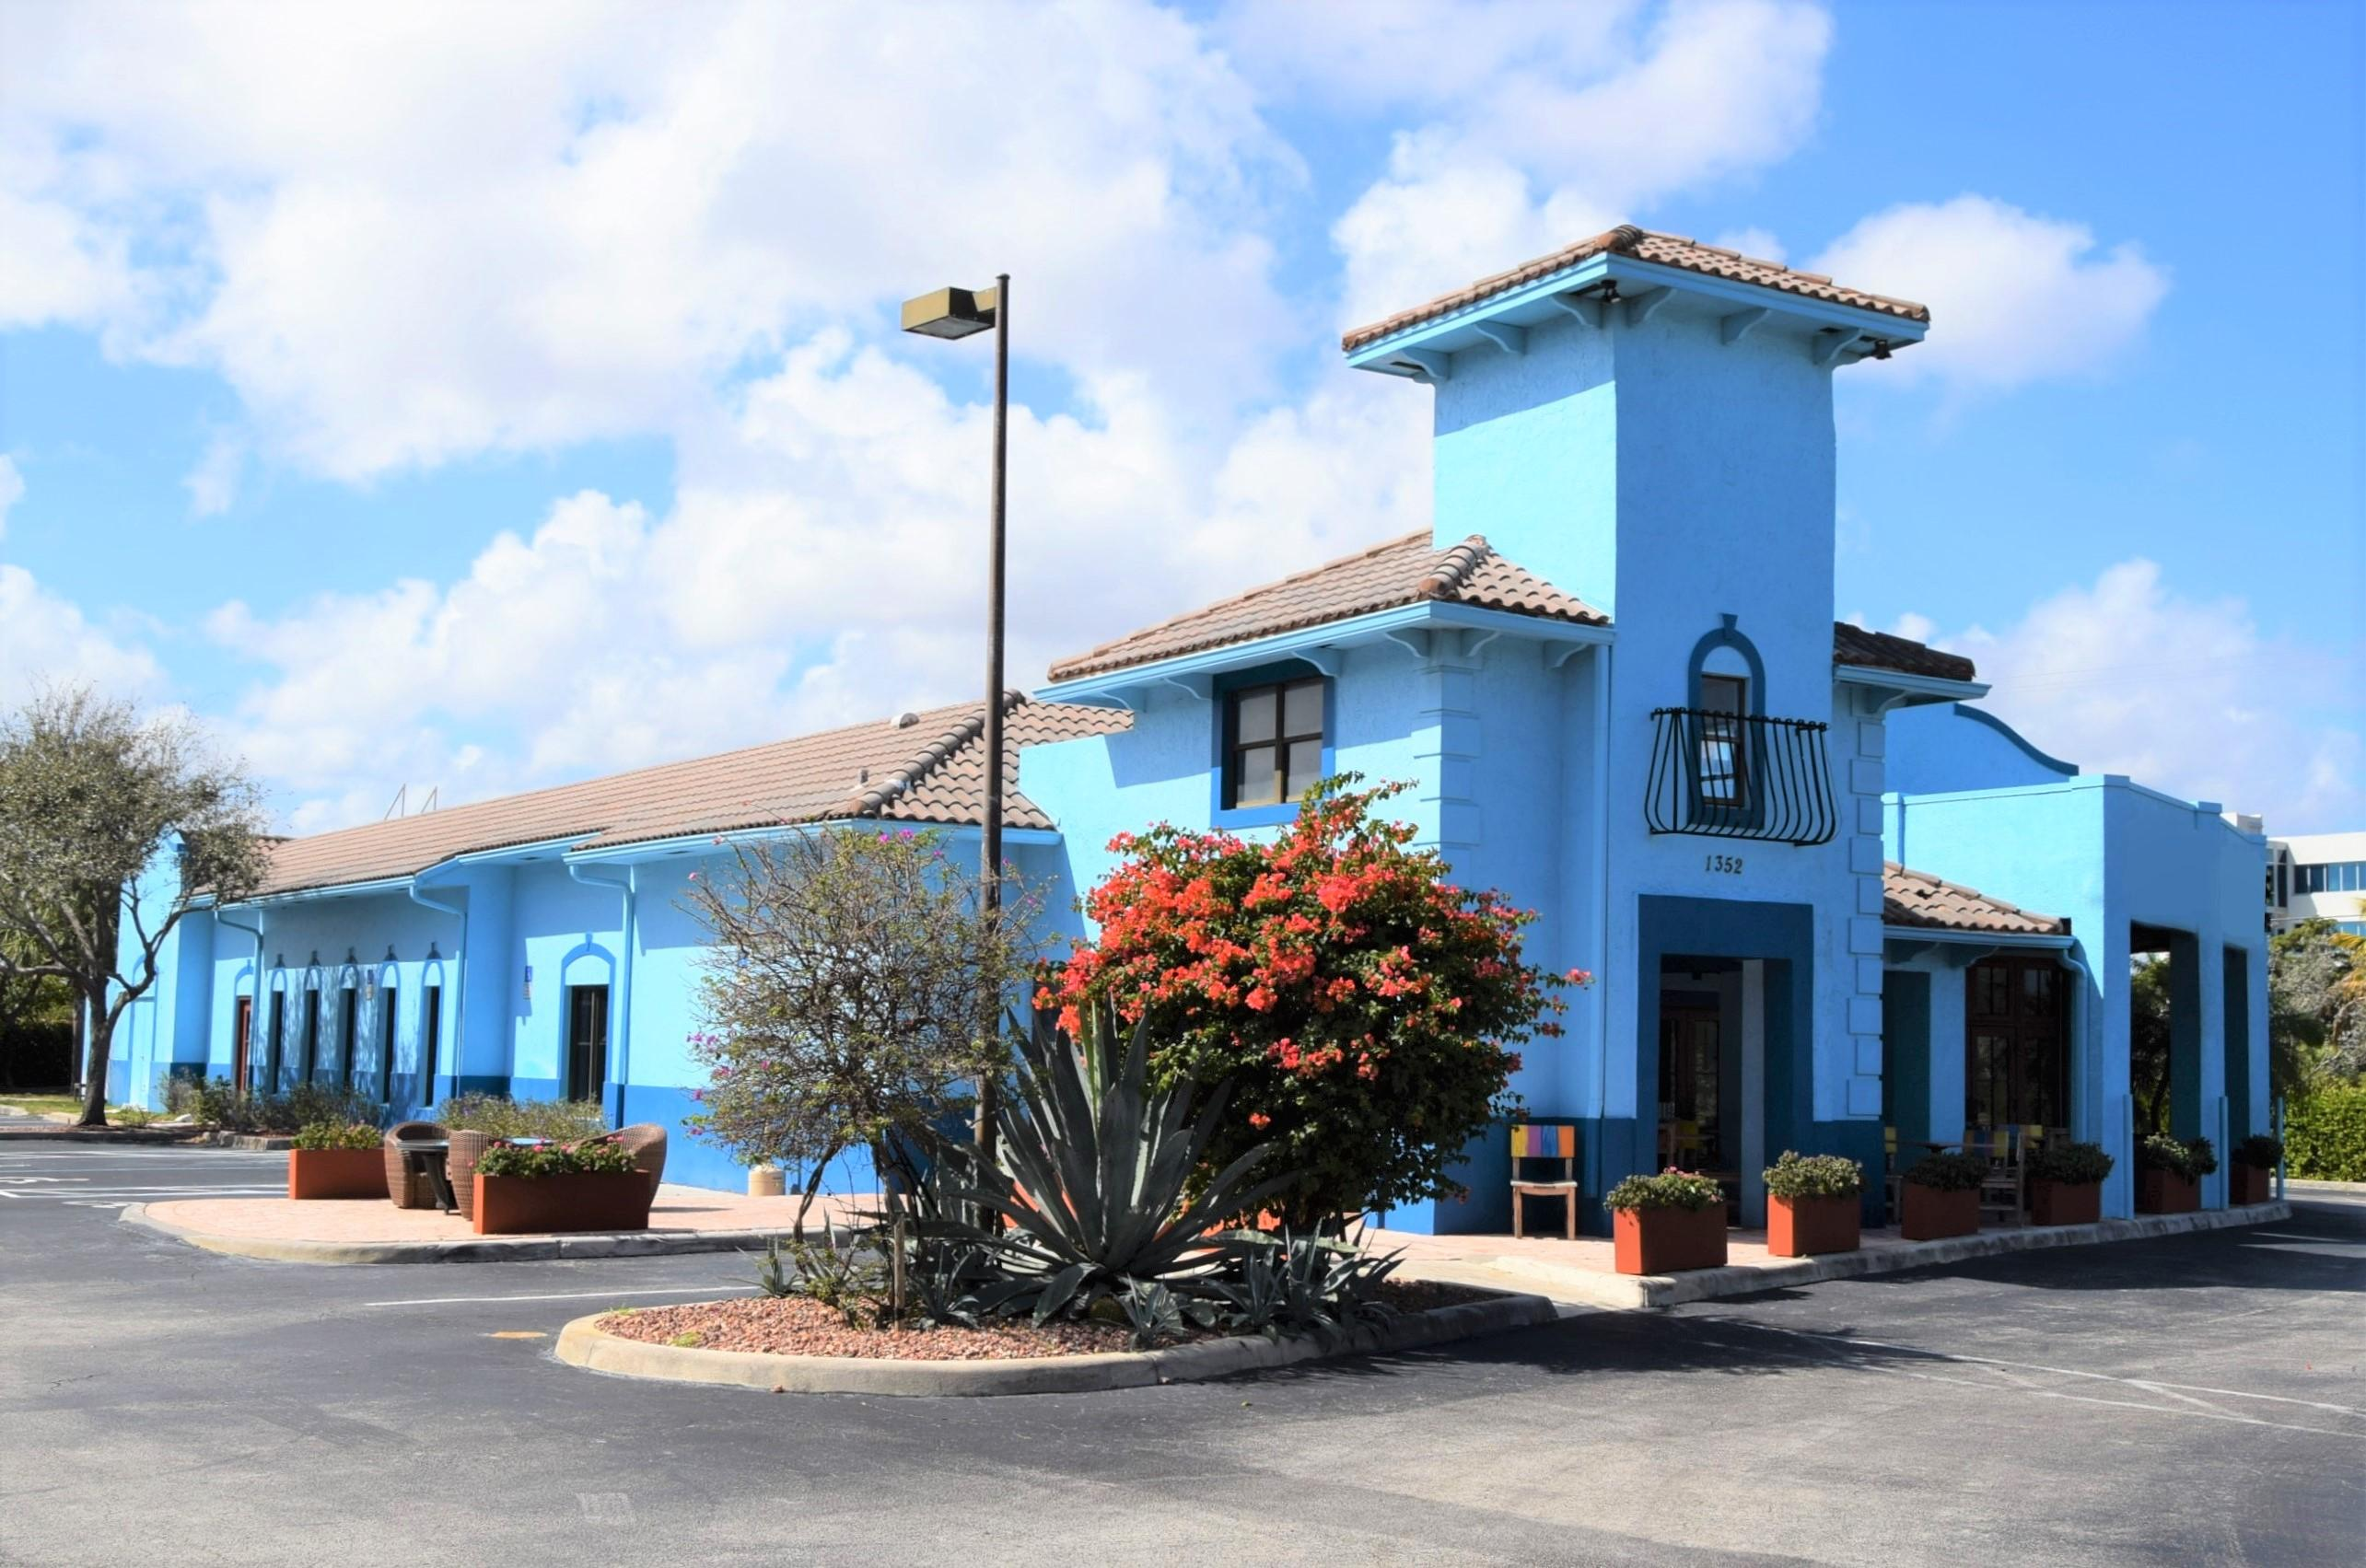 Rarely Available, Freestanding 7,122+/- SF commercial building with 200+/- feet along U.S. Highway One in Jupiter, Florida. Currently built out as a fully-operational restaurant, all furniture, fixtures and equipment (FF&E) are included in the sale. Ample parking and great visibility. Additional permitted uses include family office, multi-tenant office, and medical.